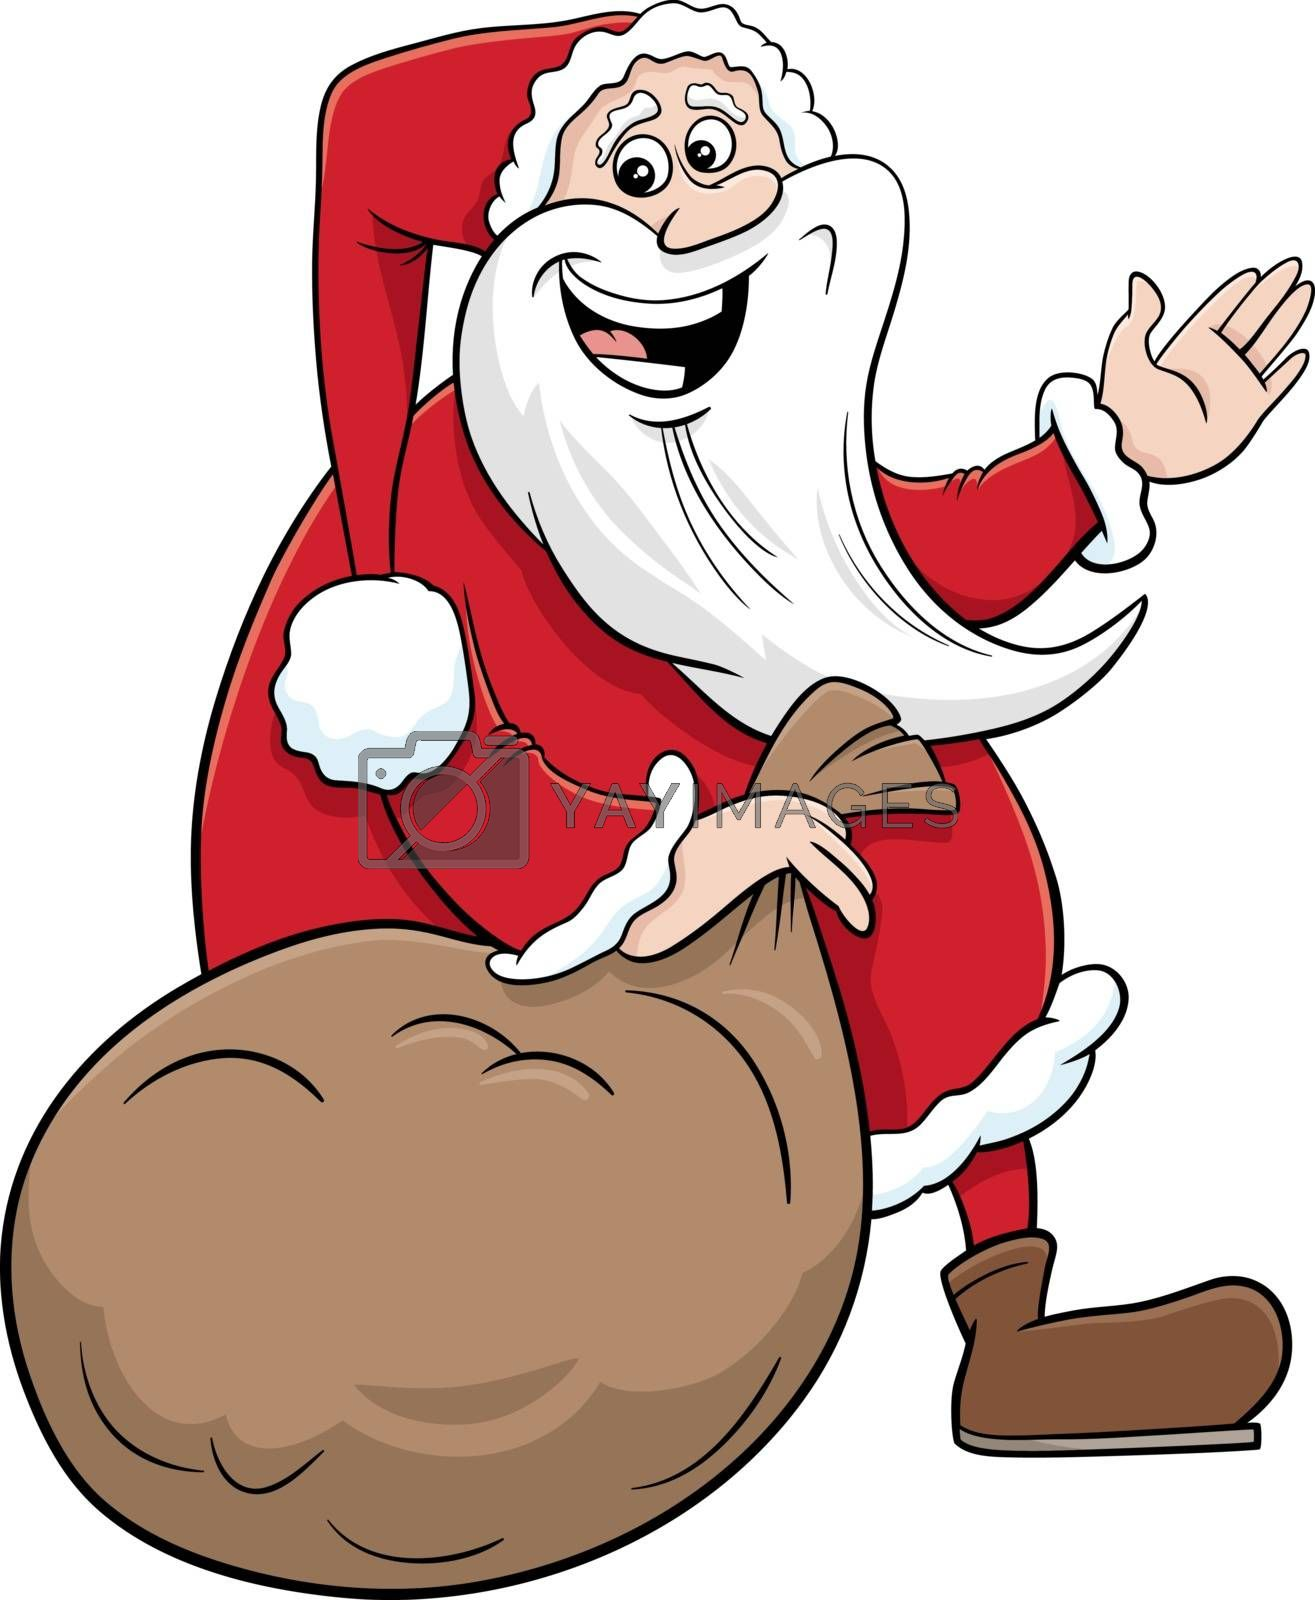 Cartoon Illustration of Santa Claus Christmas Character with Sack of Presents